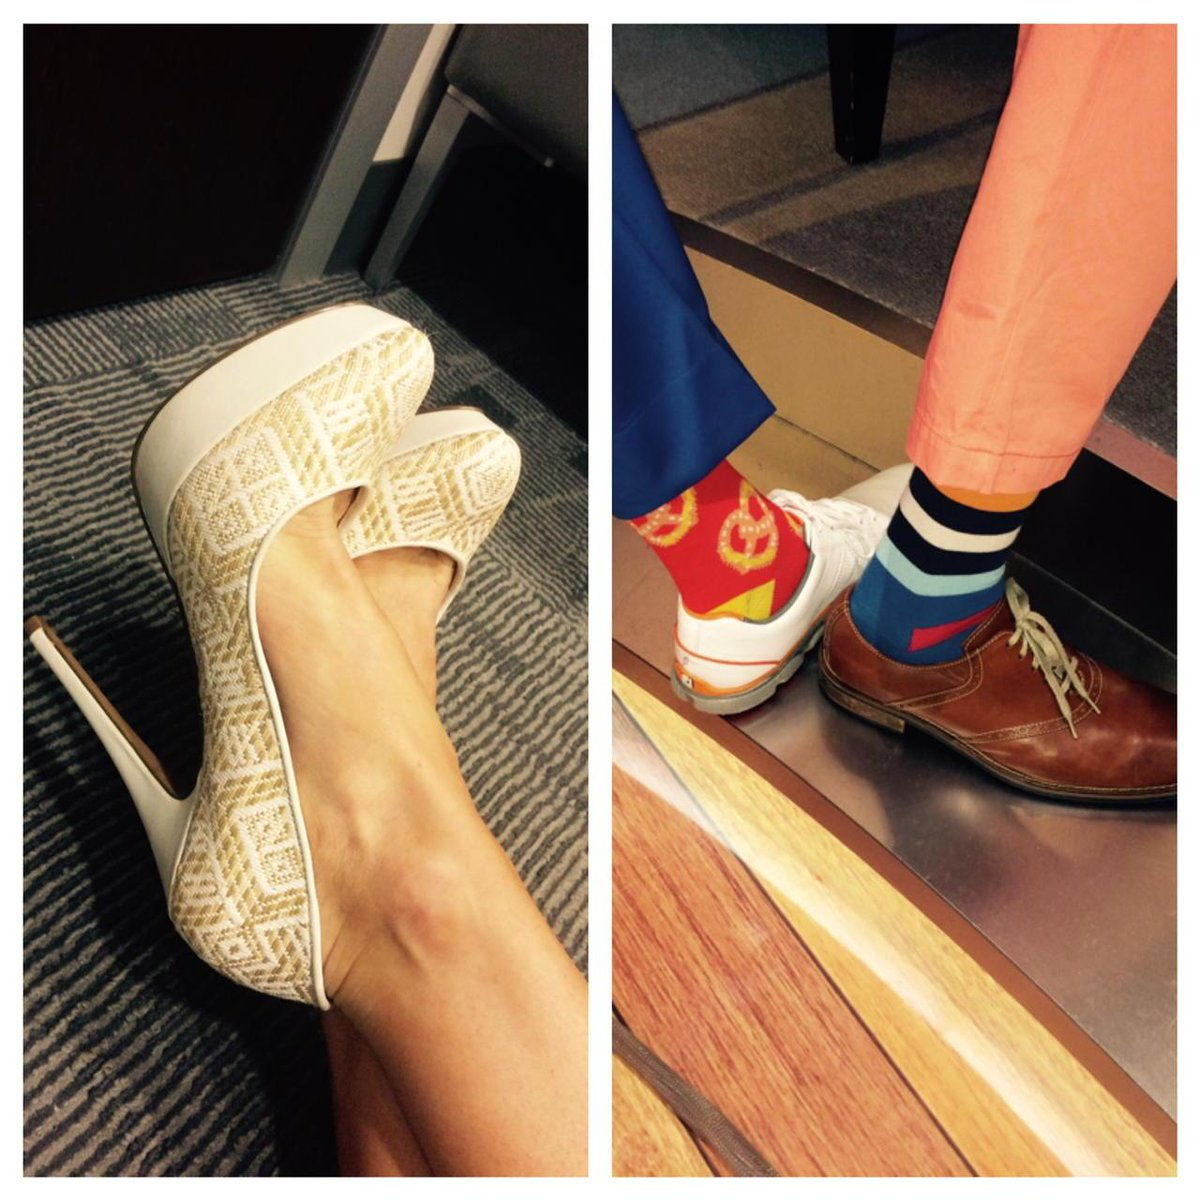 Happy #FunShoeFriday! (Credit- @CharlesDavidCA shoes) or...#FunSOCKFriday for @ChrisDiMarco and @damonhackGC<br>http://pic.twitter.com/YzkqxoDbOZ